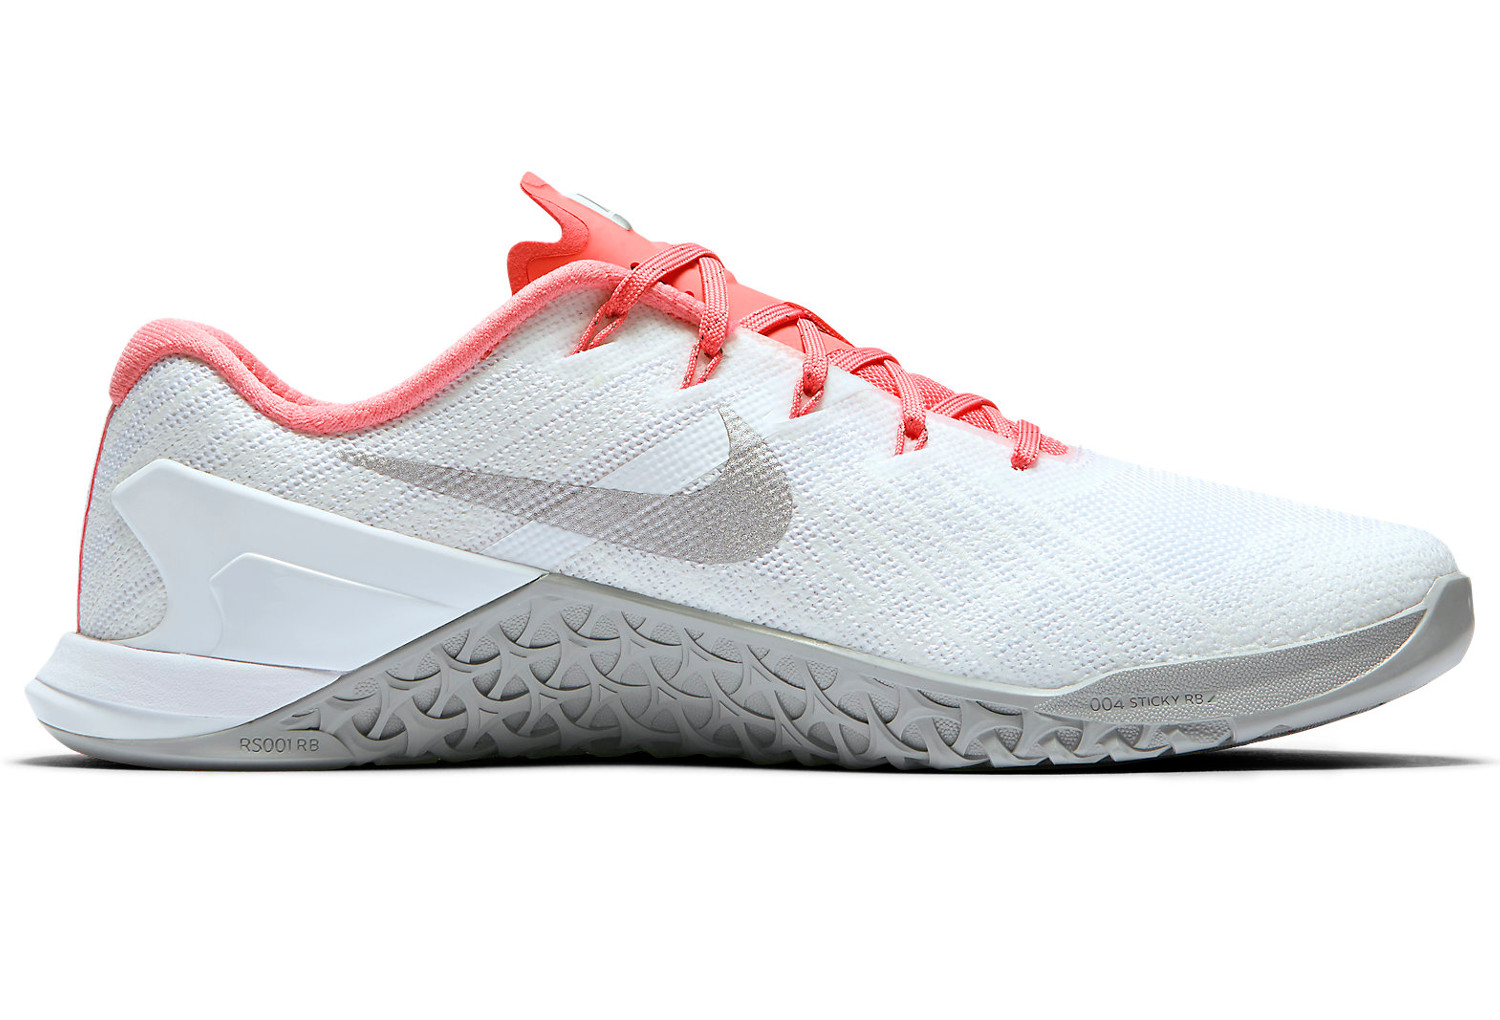 chaussures de cross training femme nike metcon 3 blanc. Black Bedroom Furniture Sets. Home Design Ideas